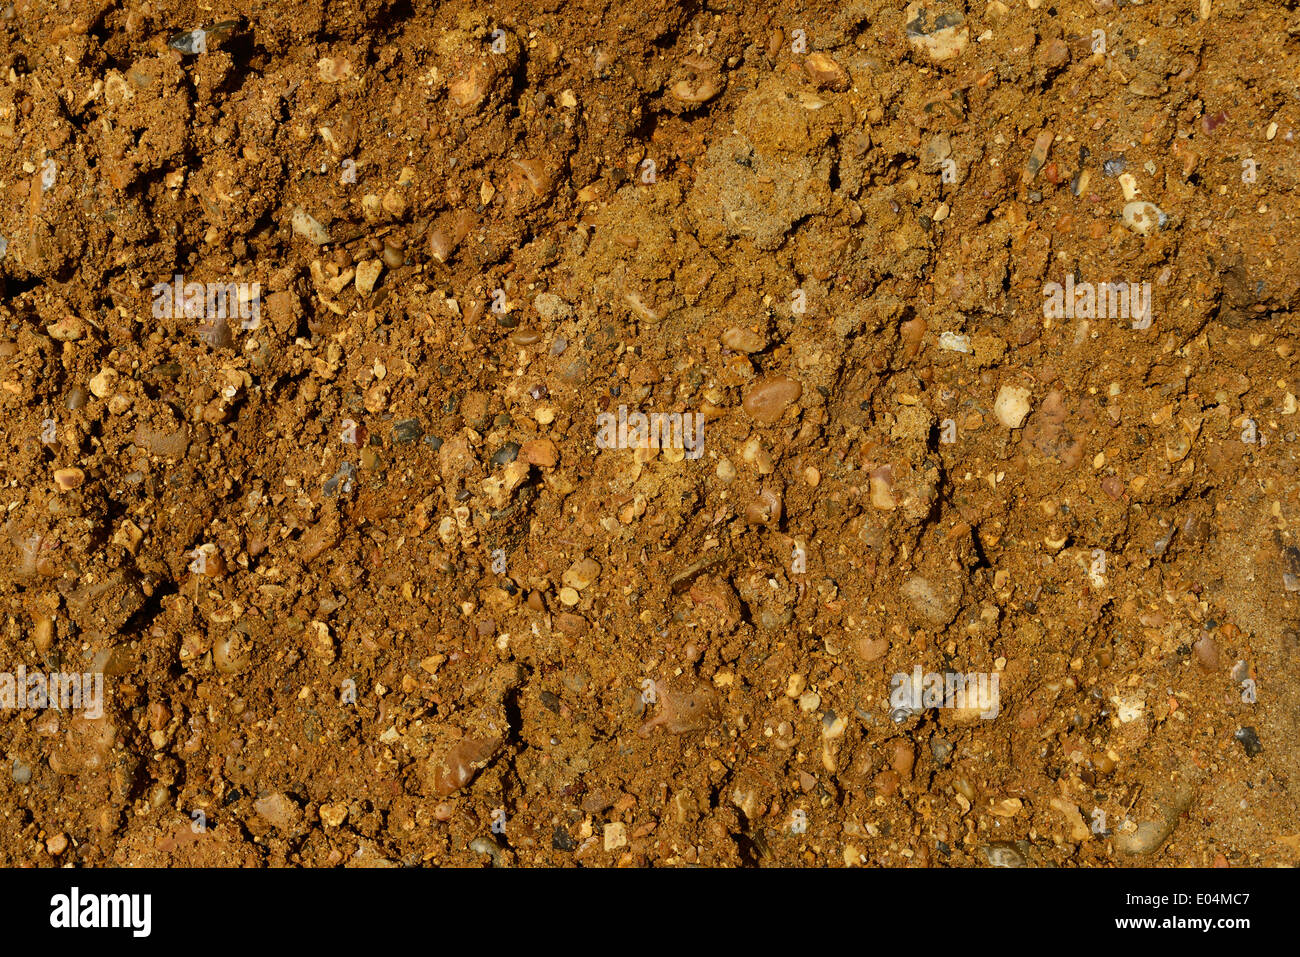 Close up detail of soil and stones - Stock Image